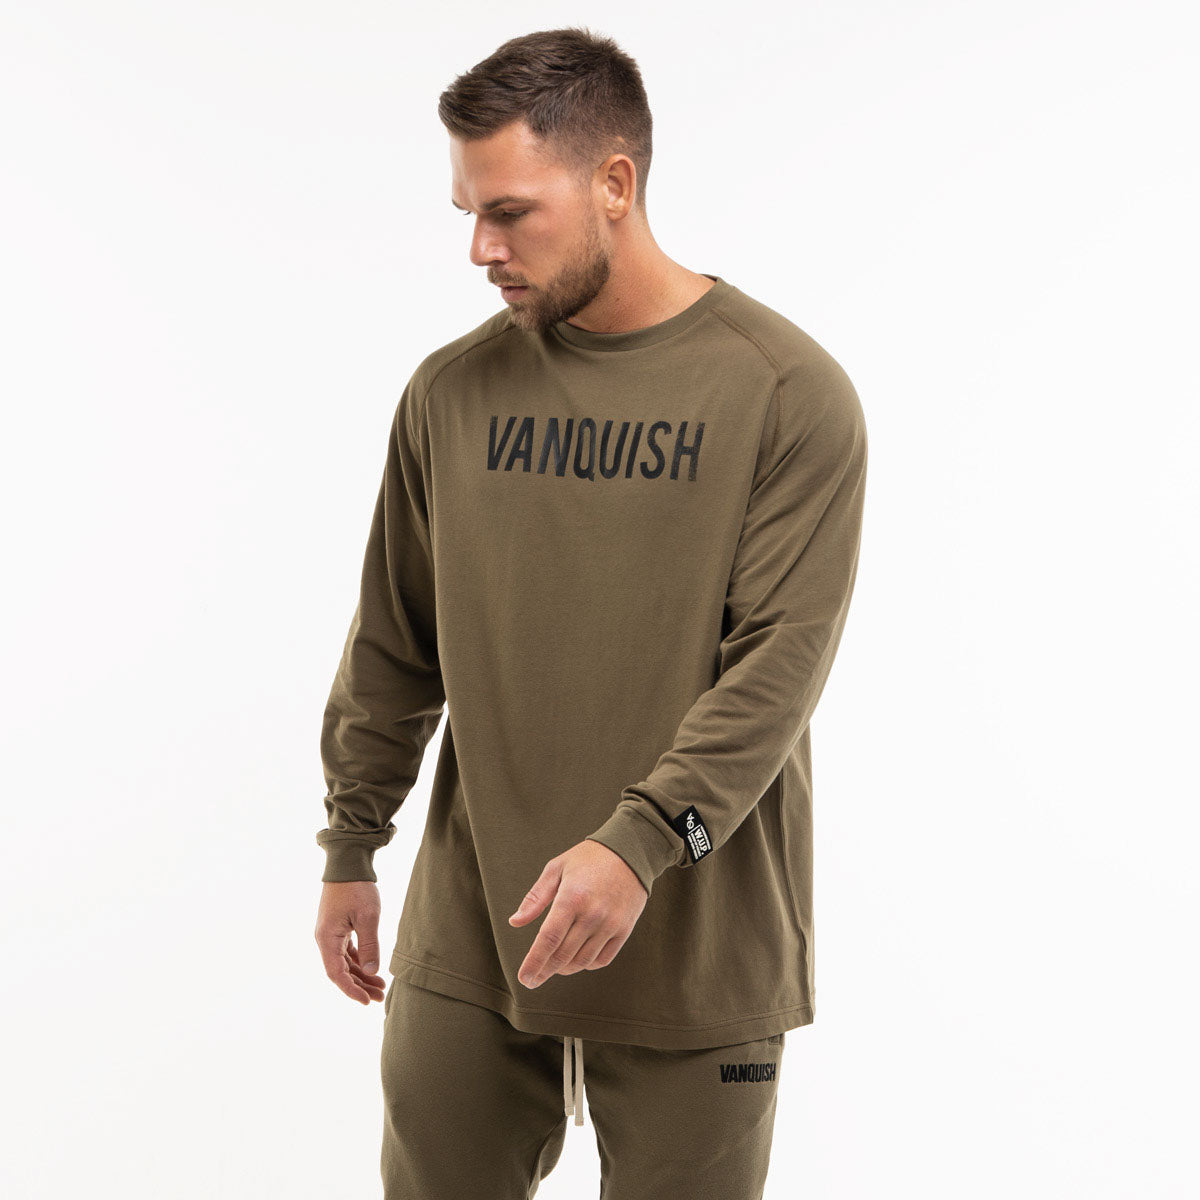 Vanquish Warm Up Project Olive Oversized Long Sleeve T Shirt